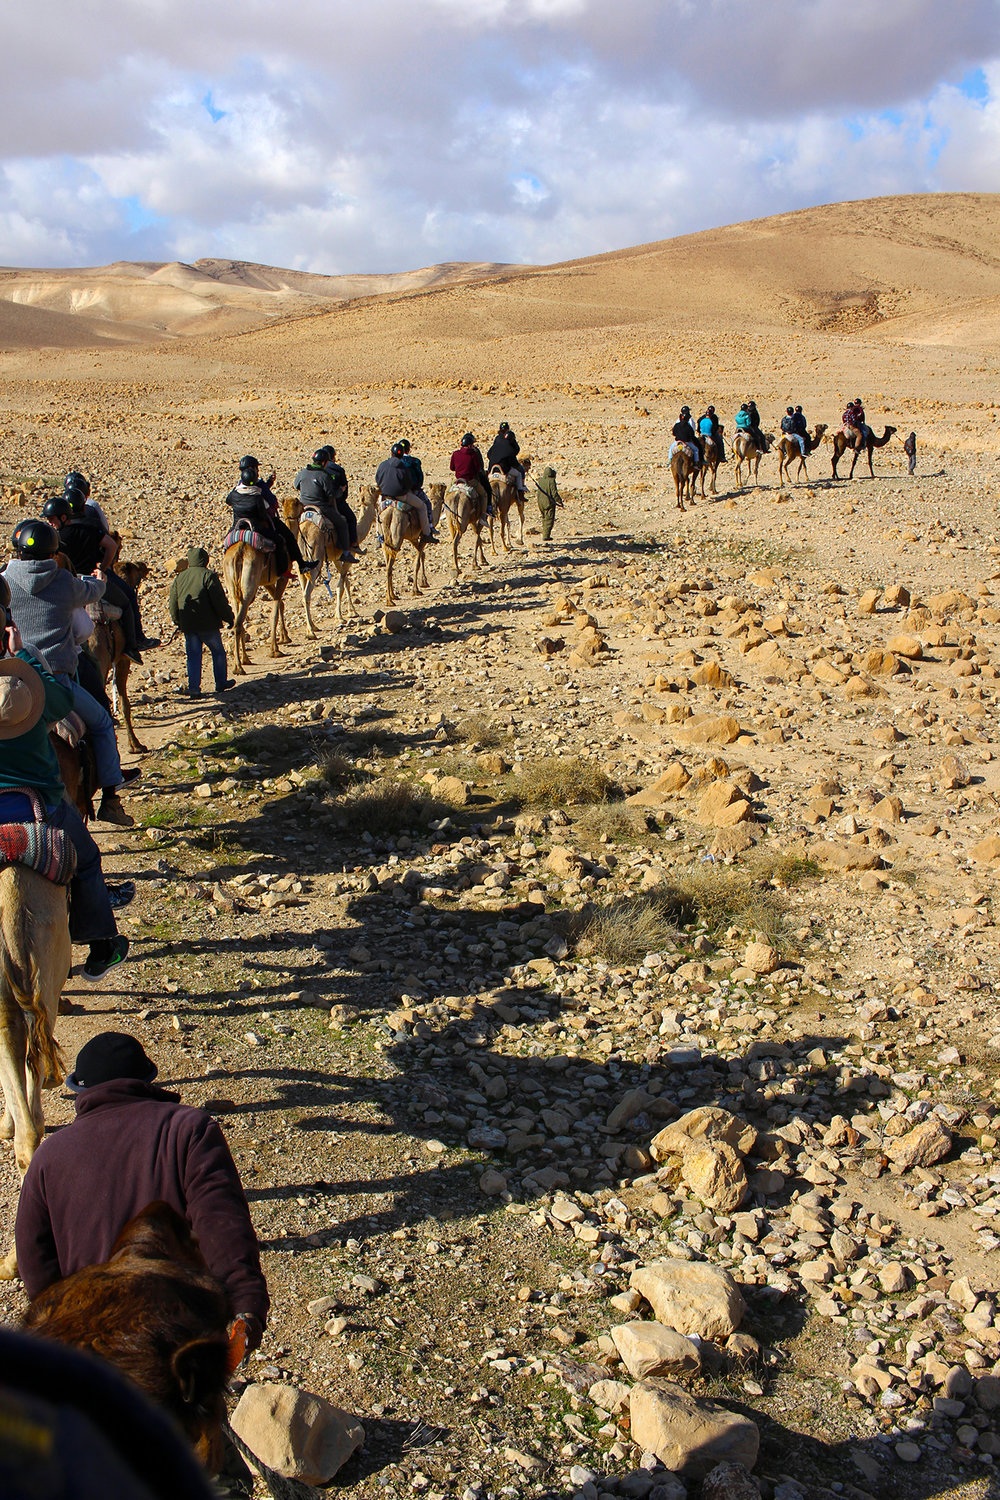 Group camel ride through Israel's Negev Desert with Shorashim #Bus636, December 2016. Camel ride through the Negev Desert, Israel. Travel photography by Geena Matuson @geenamatuson #thegirlmirage.